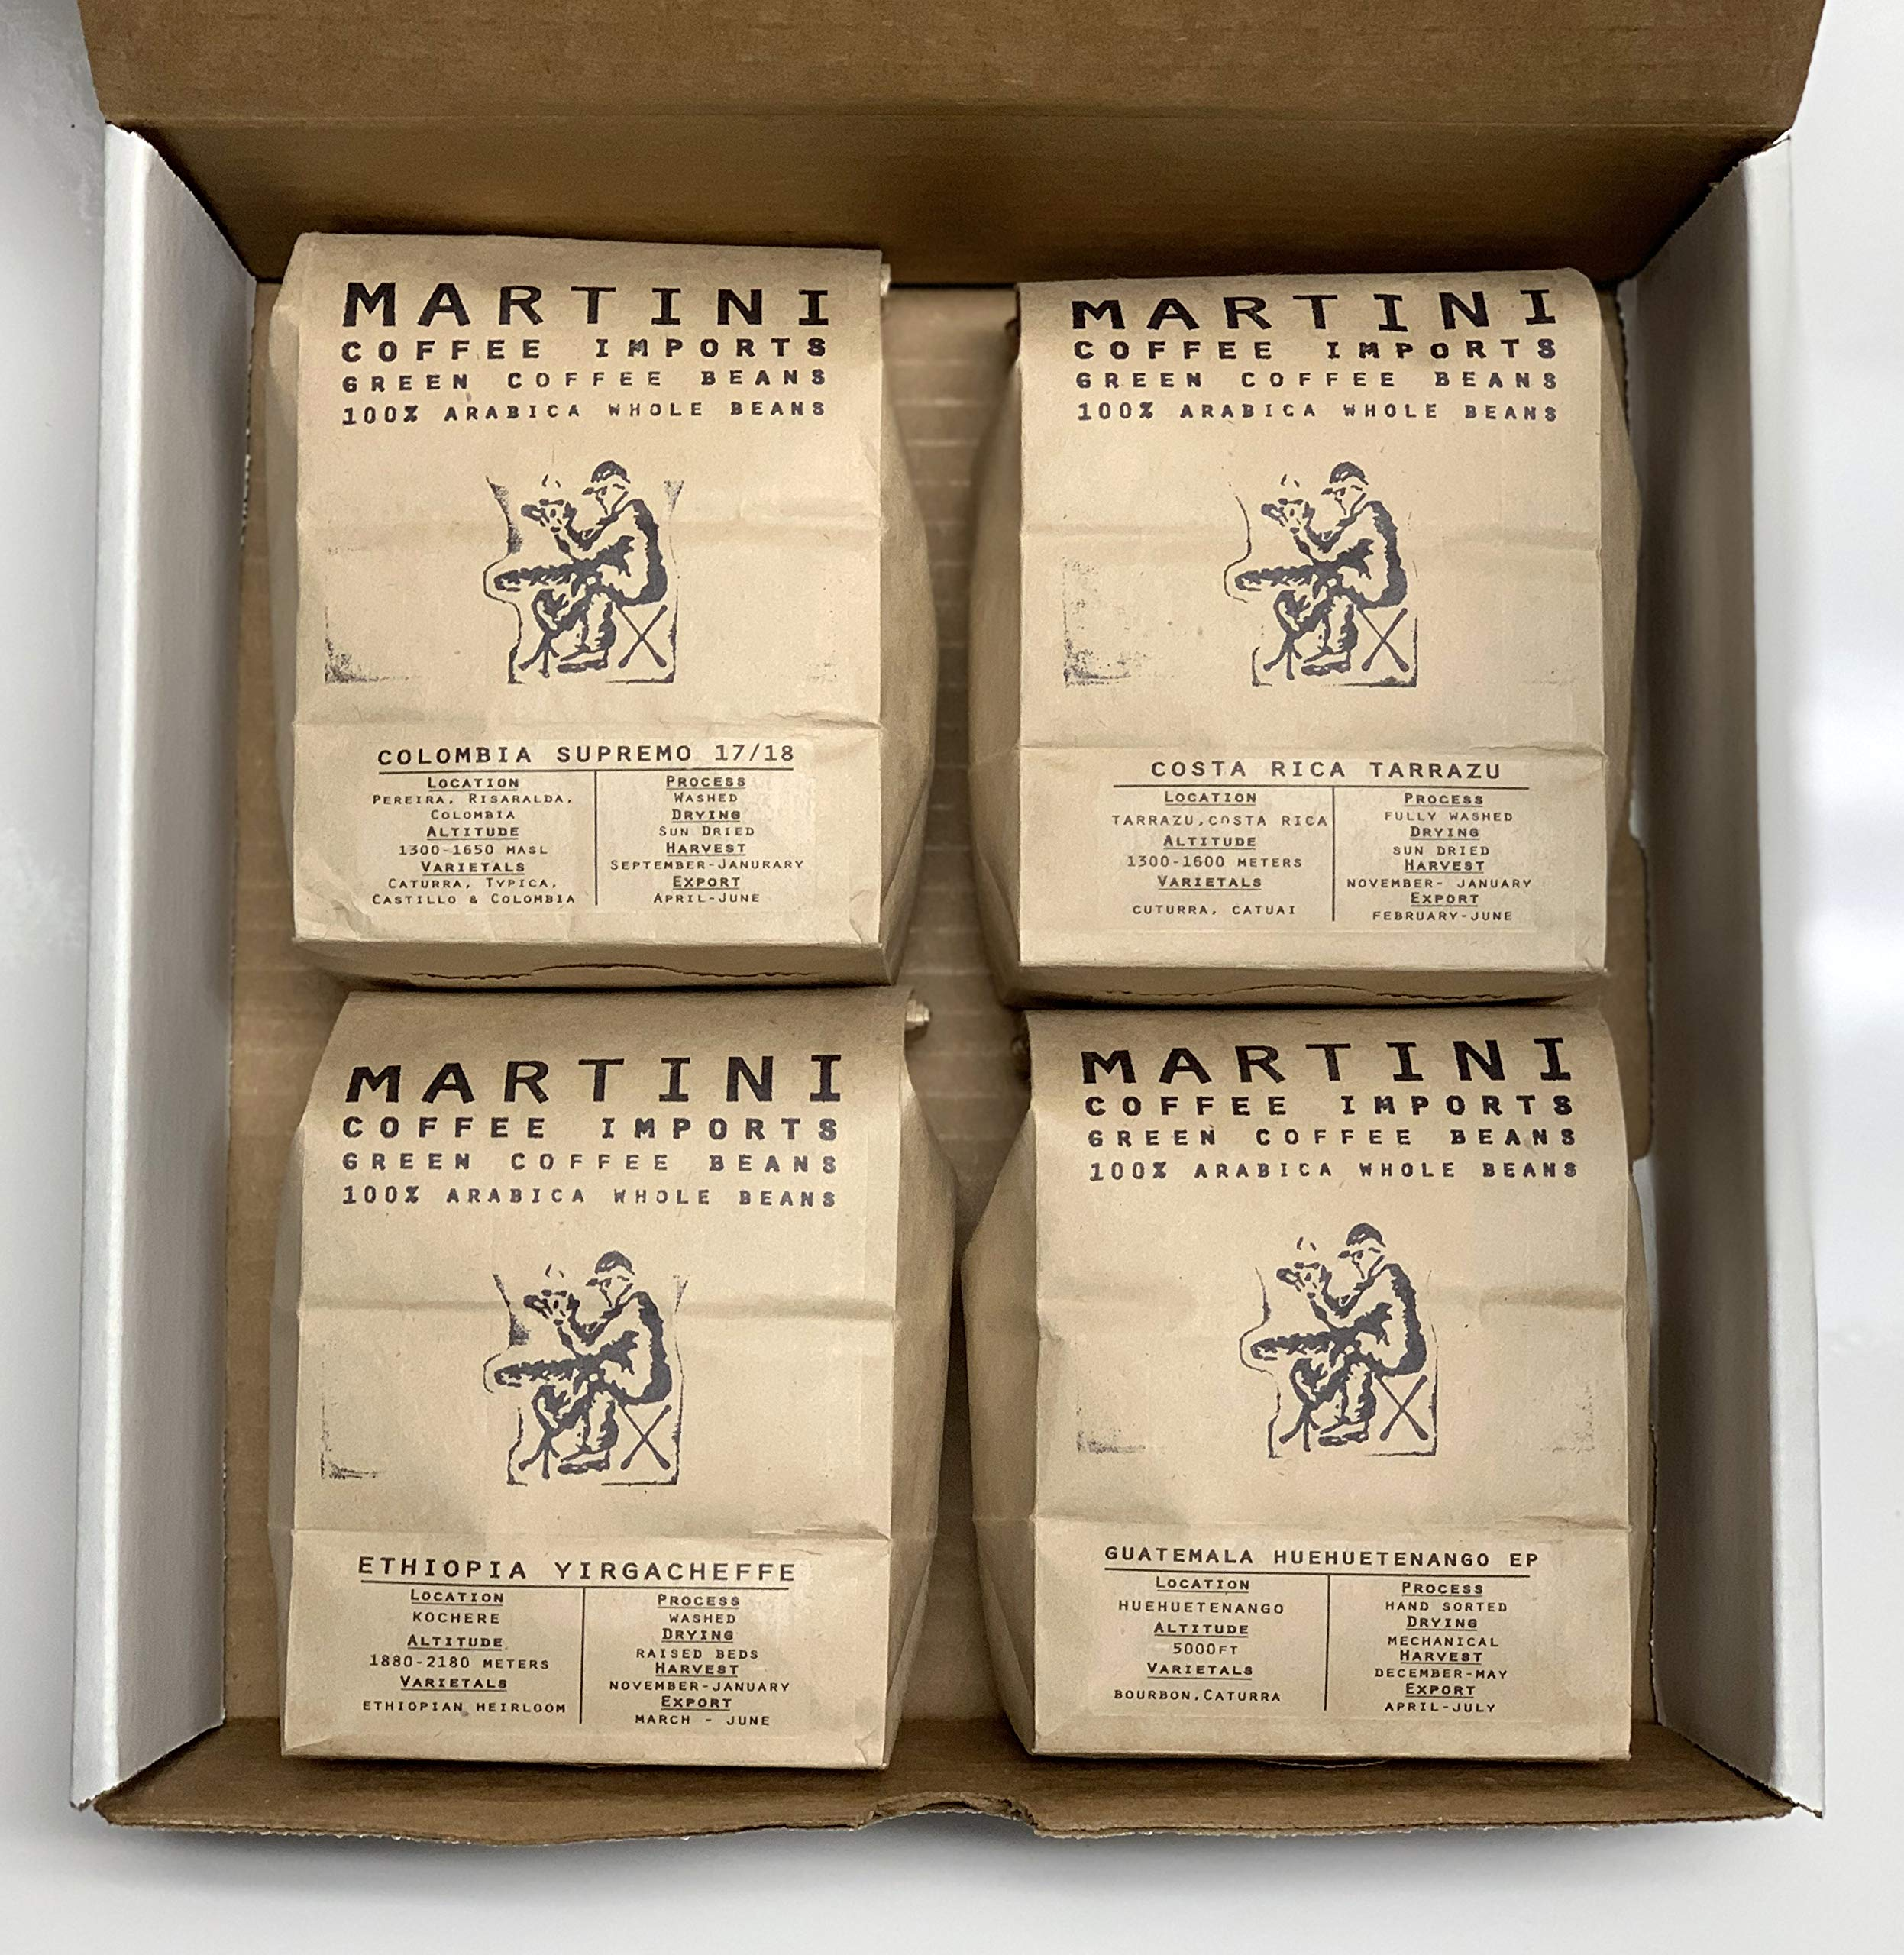 Unroasted Green Coffee Bean Sampler Pack - 4LBS - 100% raw arabica coffee beans - COLOMBIA, ETHIOPIA, GUATEMALA, COSTA RICA, BRAZIL by Martini Coffee Roasters